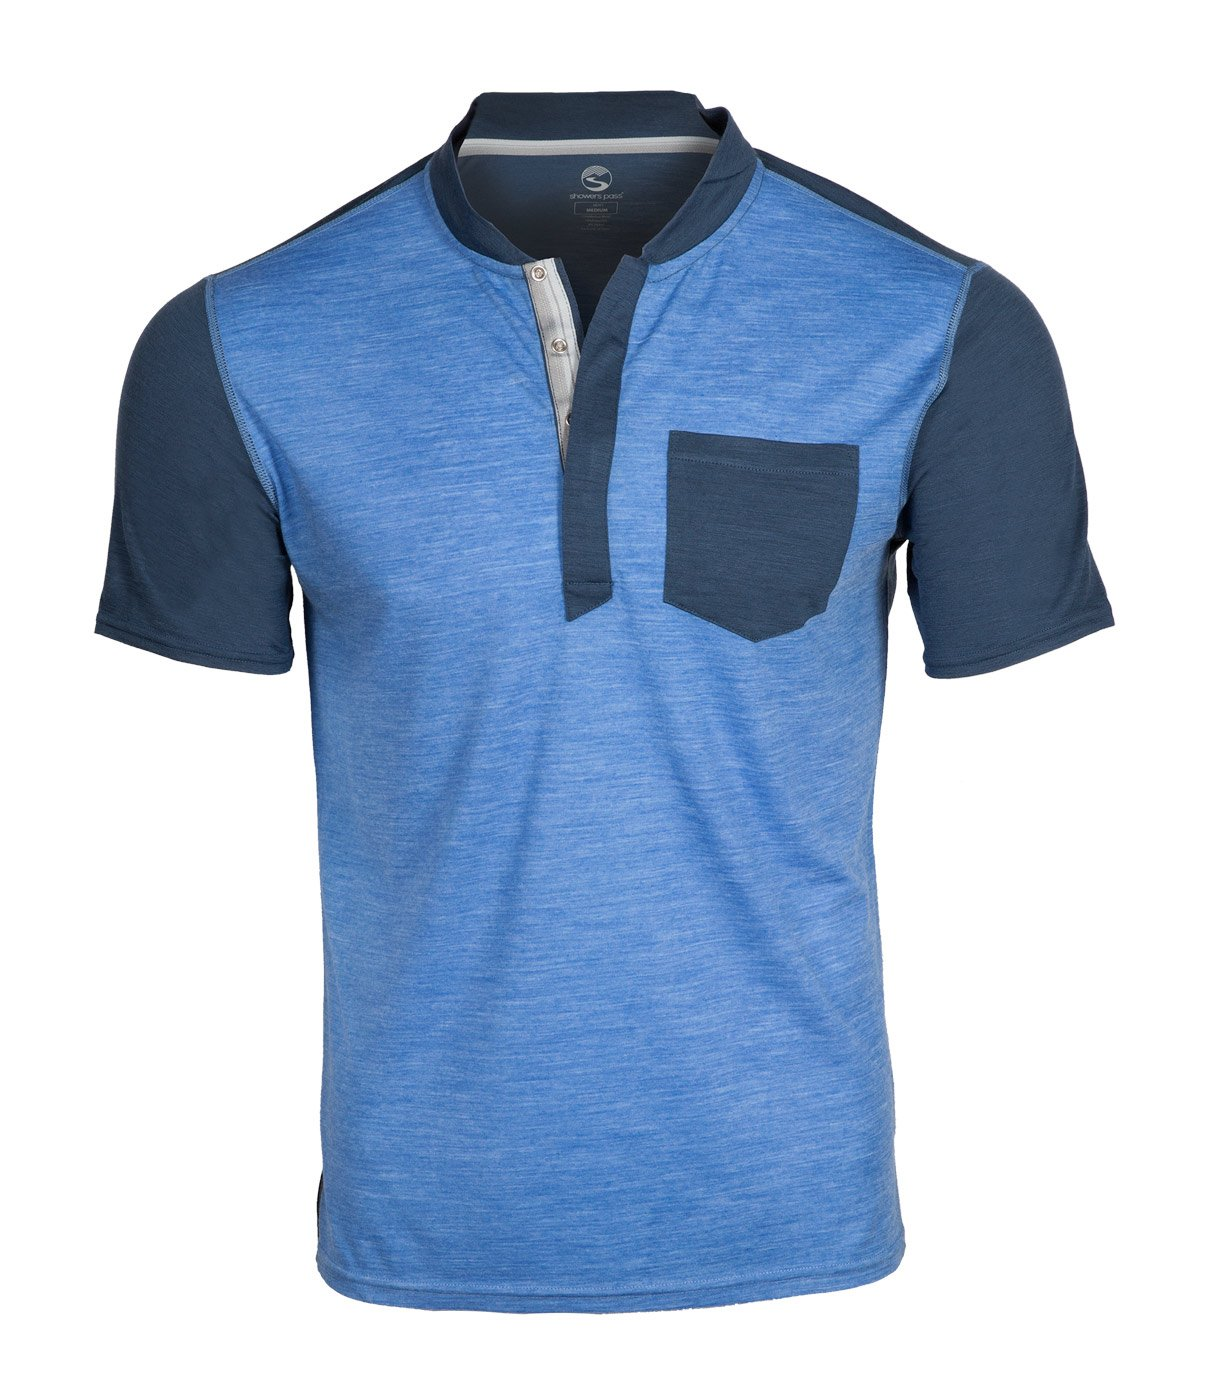 e993df5b9 Men s Hi-Line Merino Short Sleeve Shirt